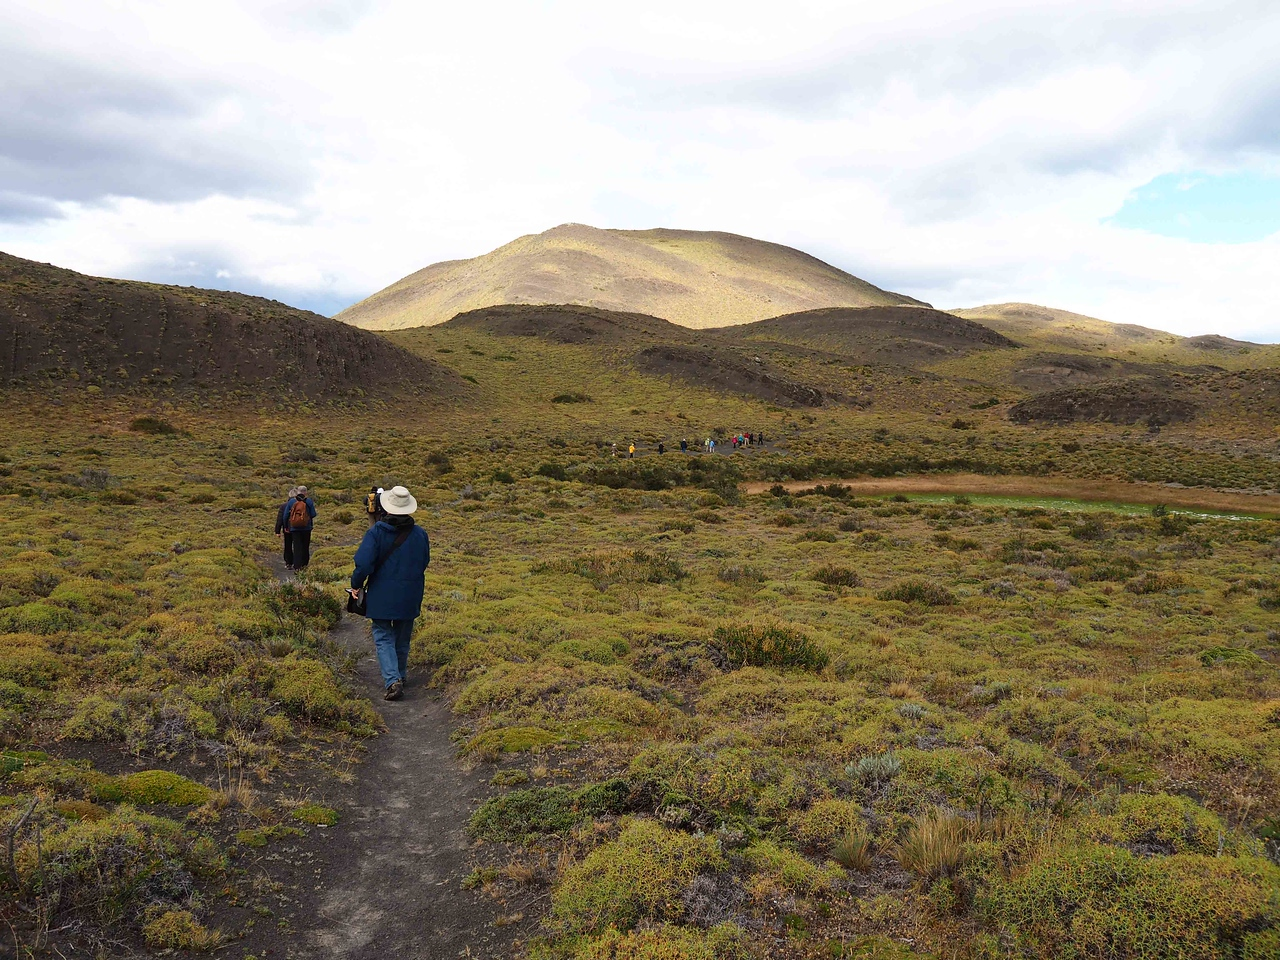 Hiking on the Pampas